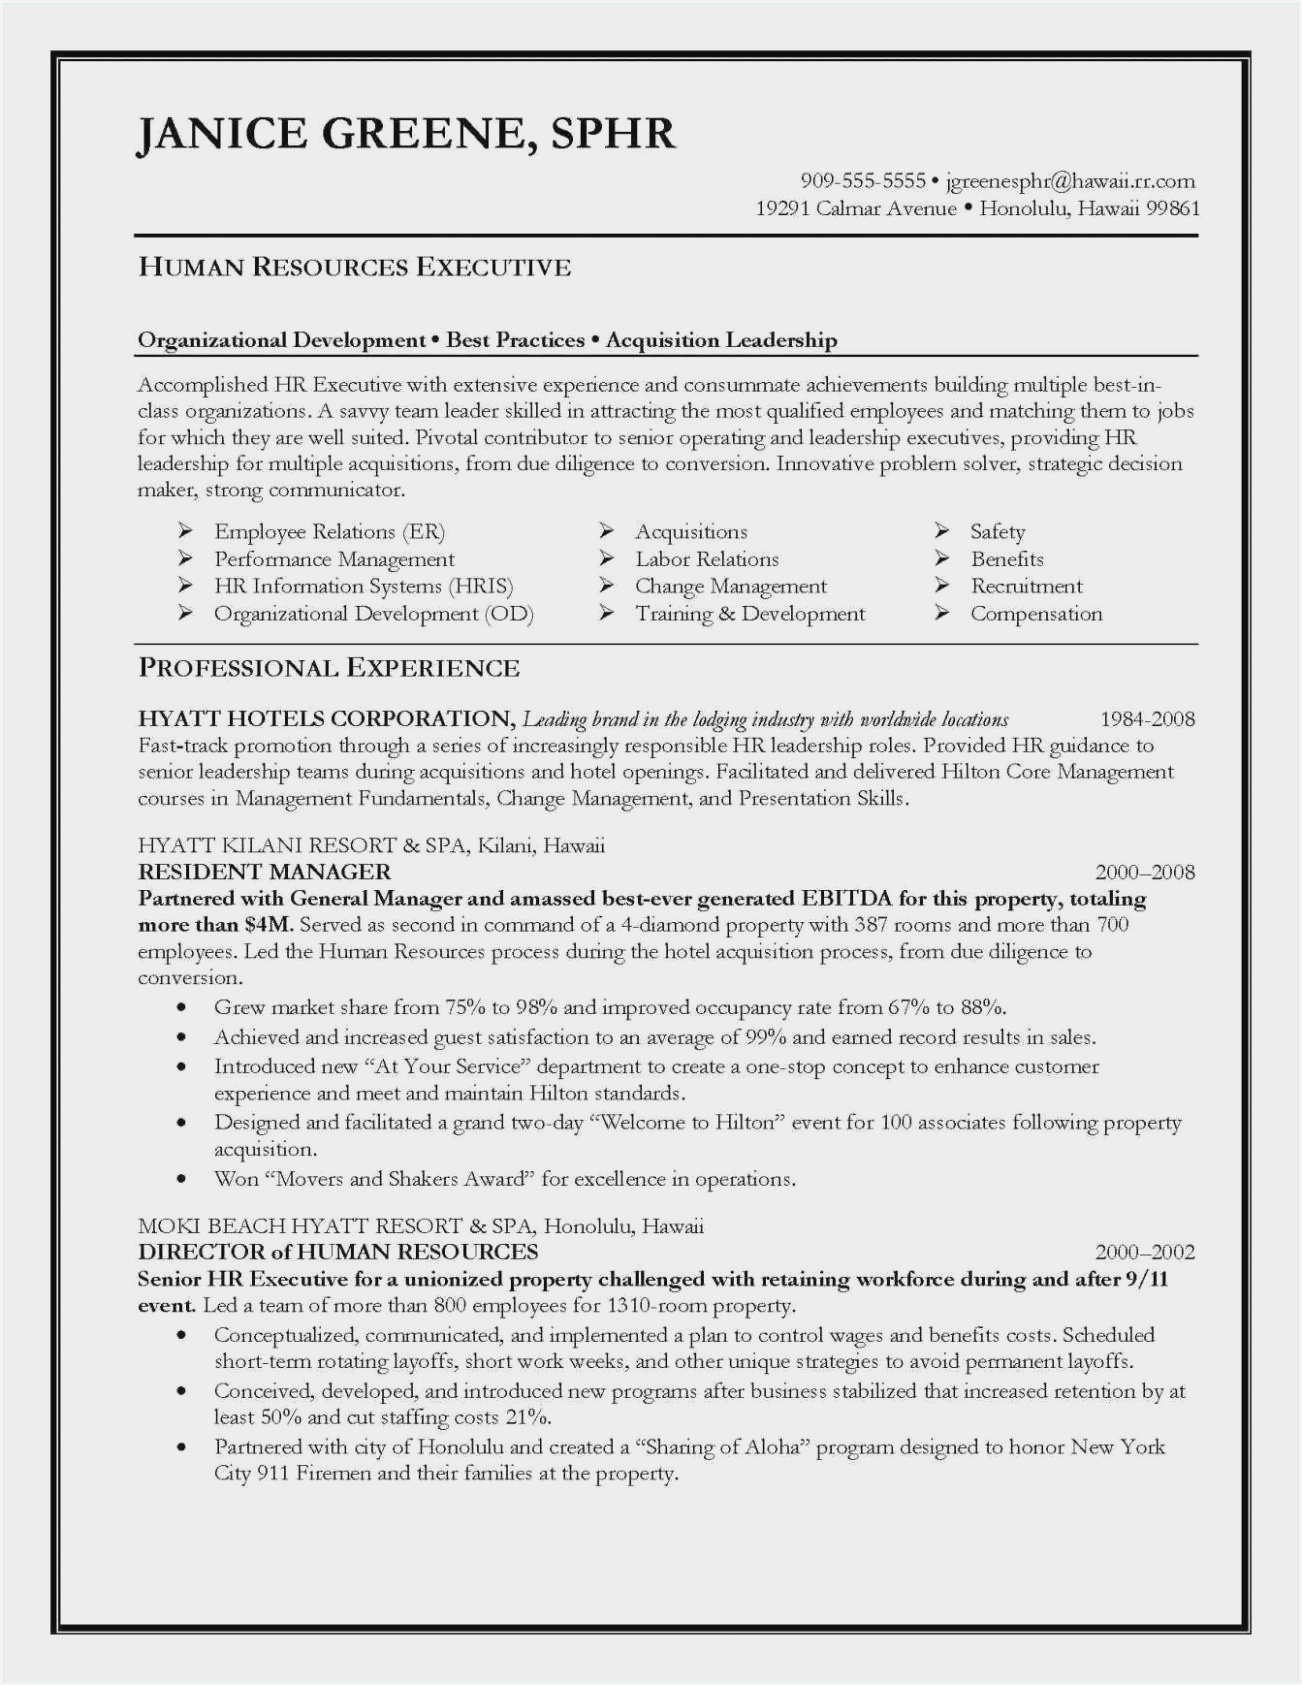 resume objective examples for leadership sample management trainer position middleware Resume Resume Objective Examples For Management